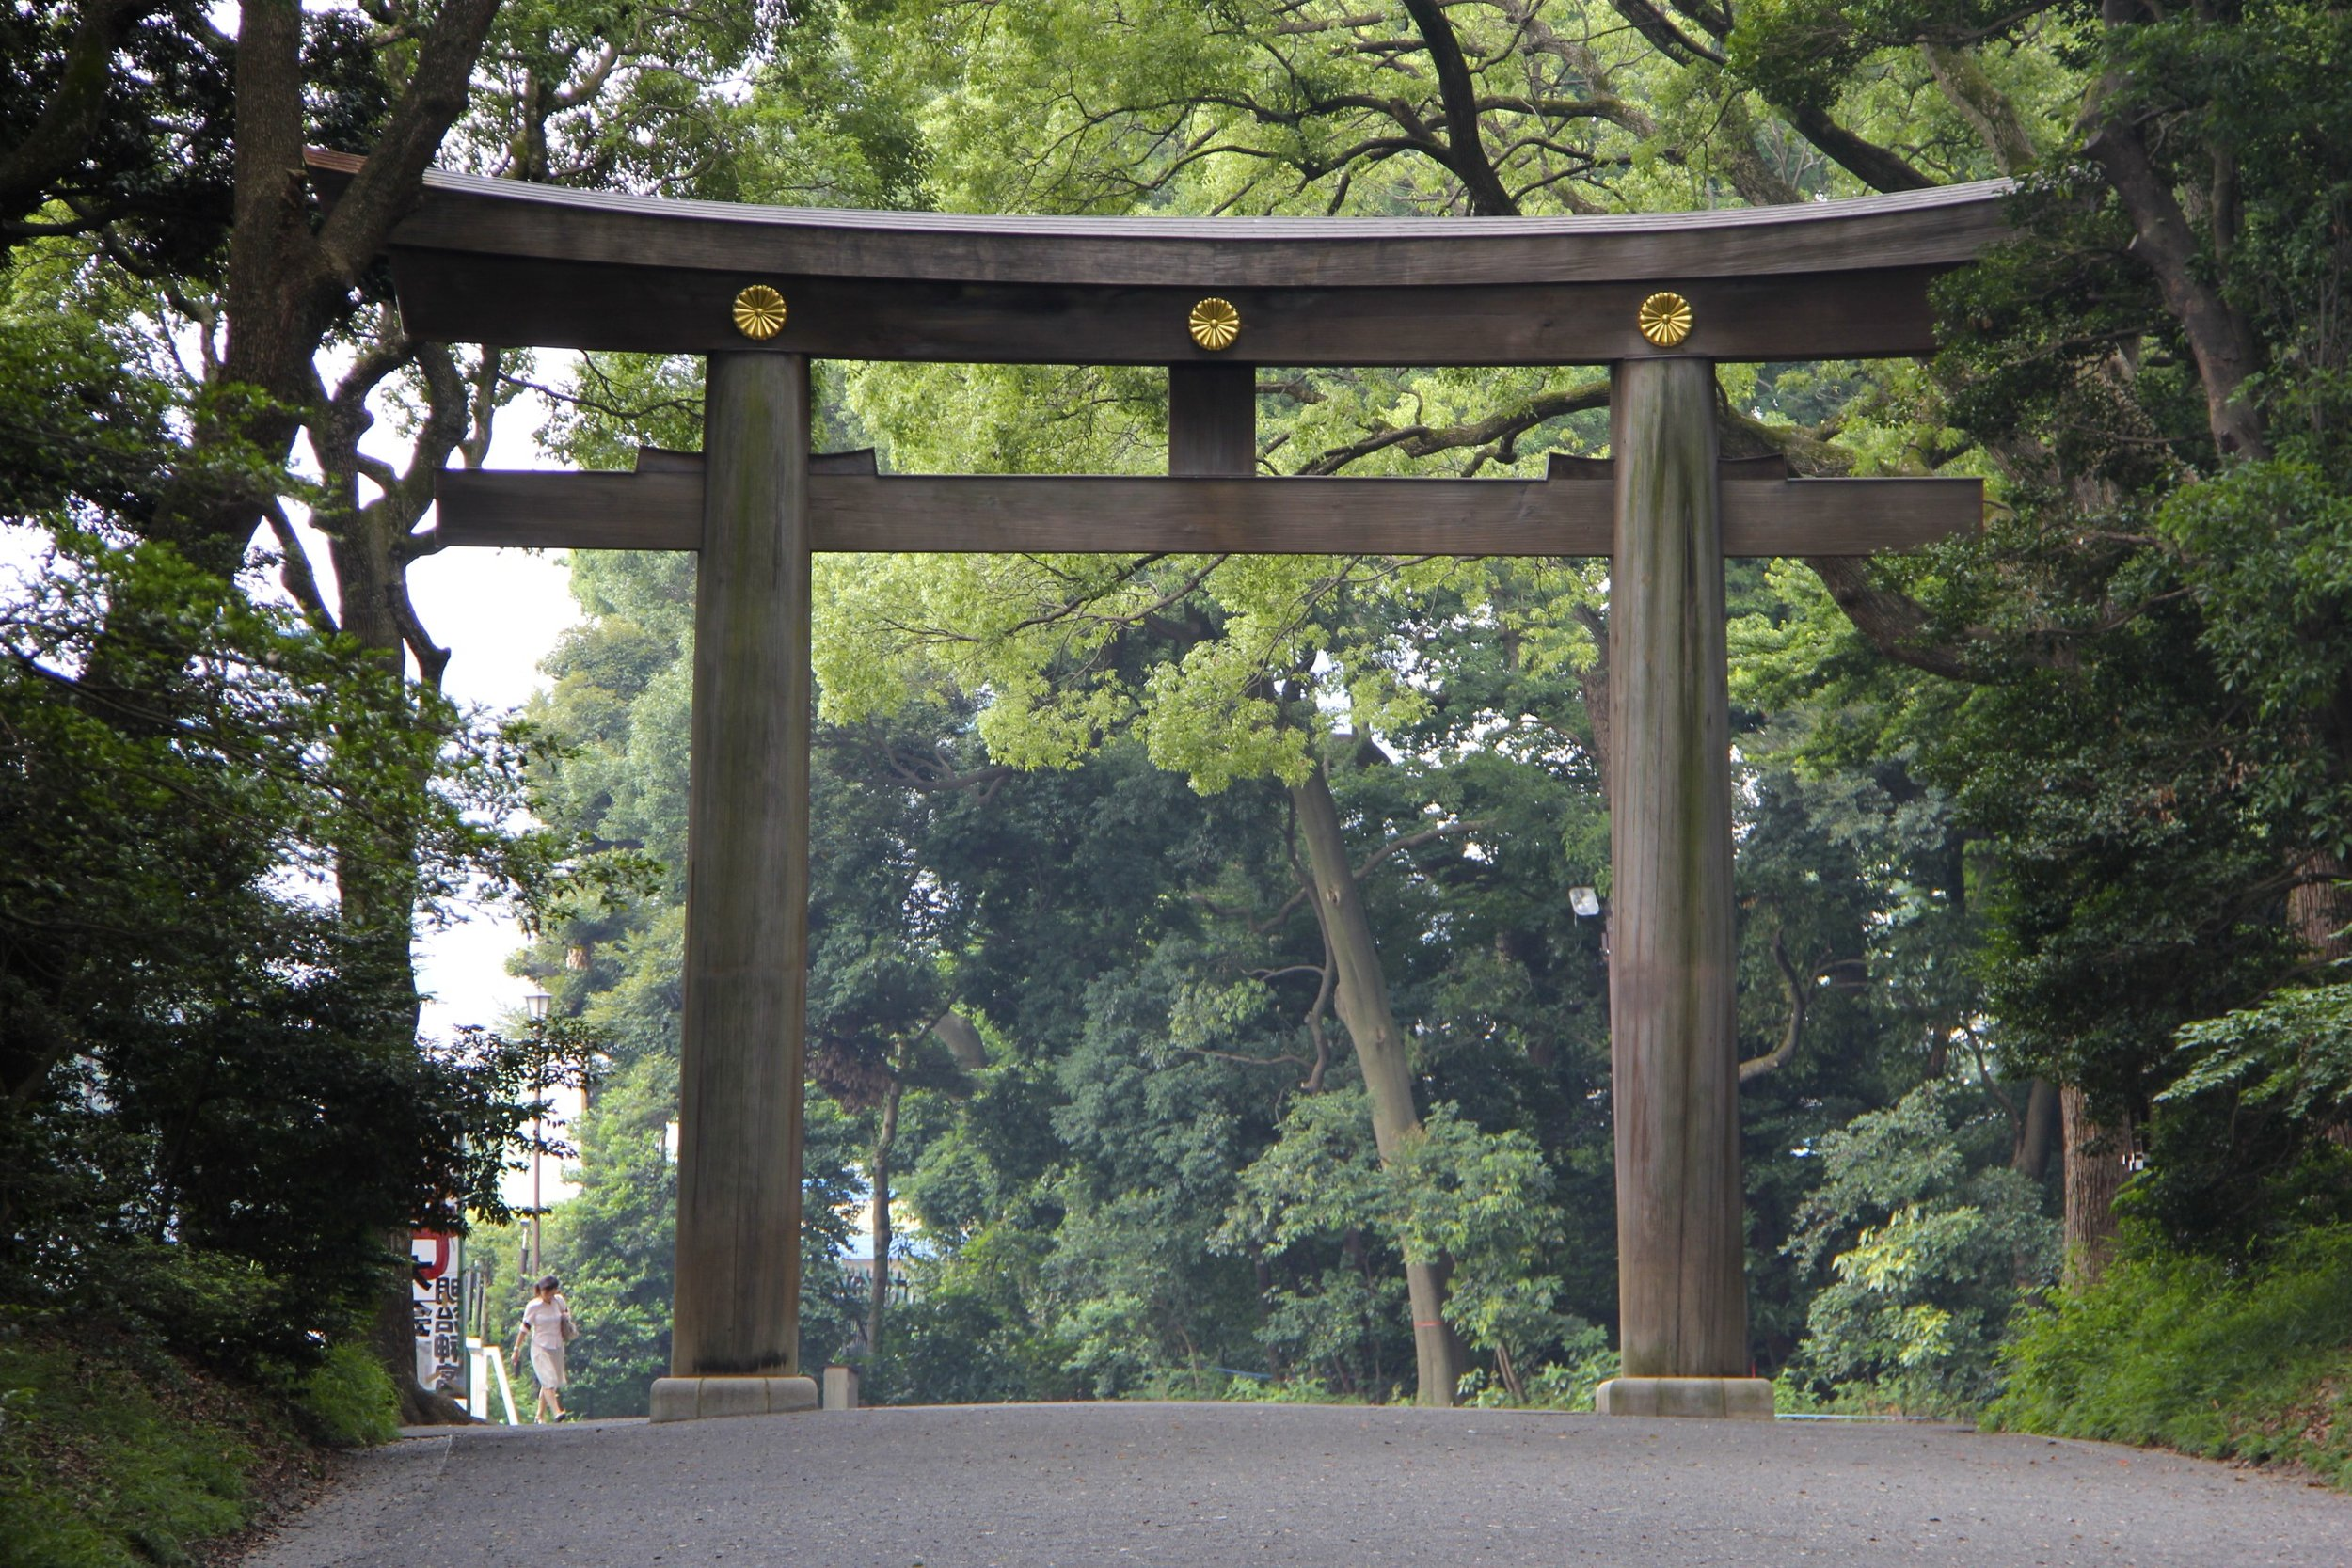 The Tori (gate)  leading to the Meiji Shrine complex.  Meiji Shrine is  located in Shibuya, Tokyo is the Shinto Shrine that is dedicated to the deified spirits of Emperor Meiji and his wife, Empress Shoken.